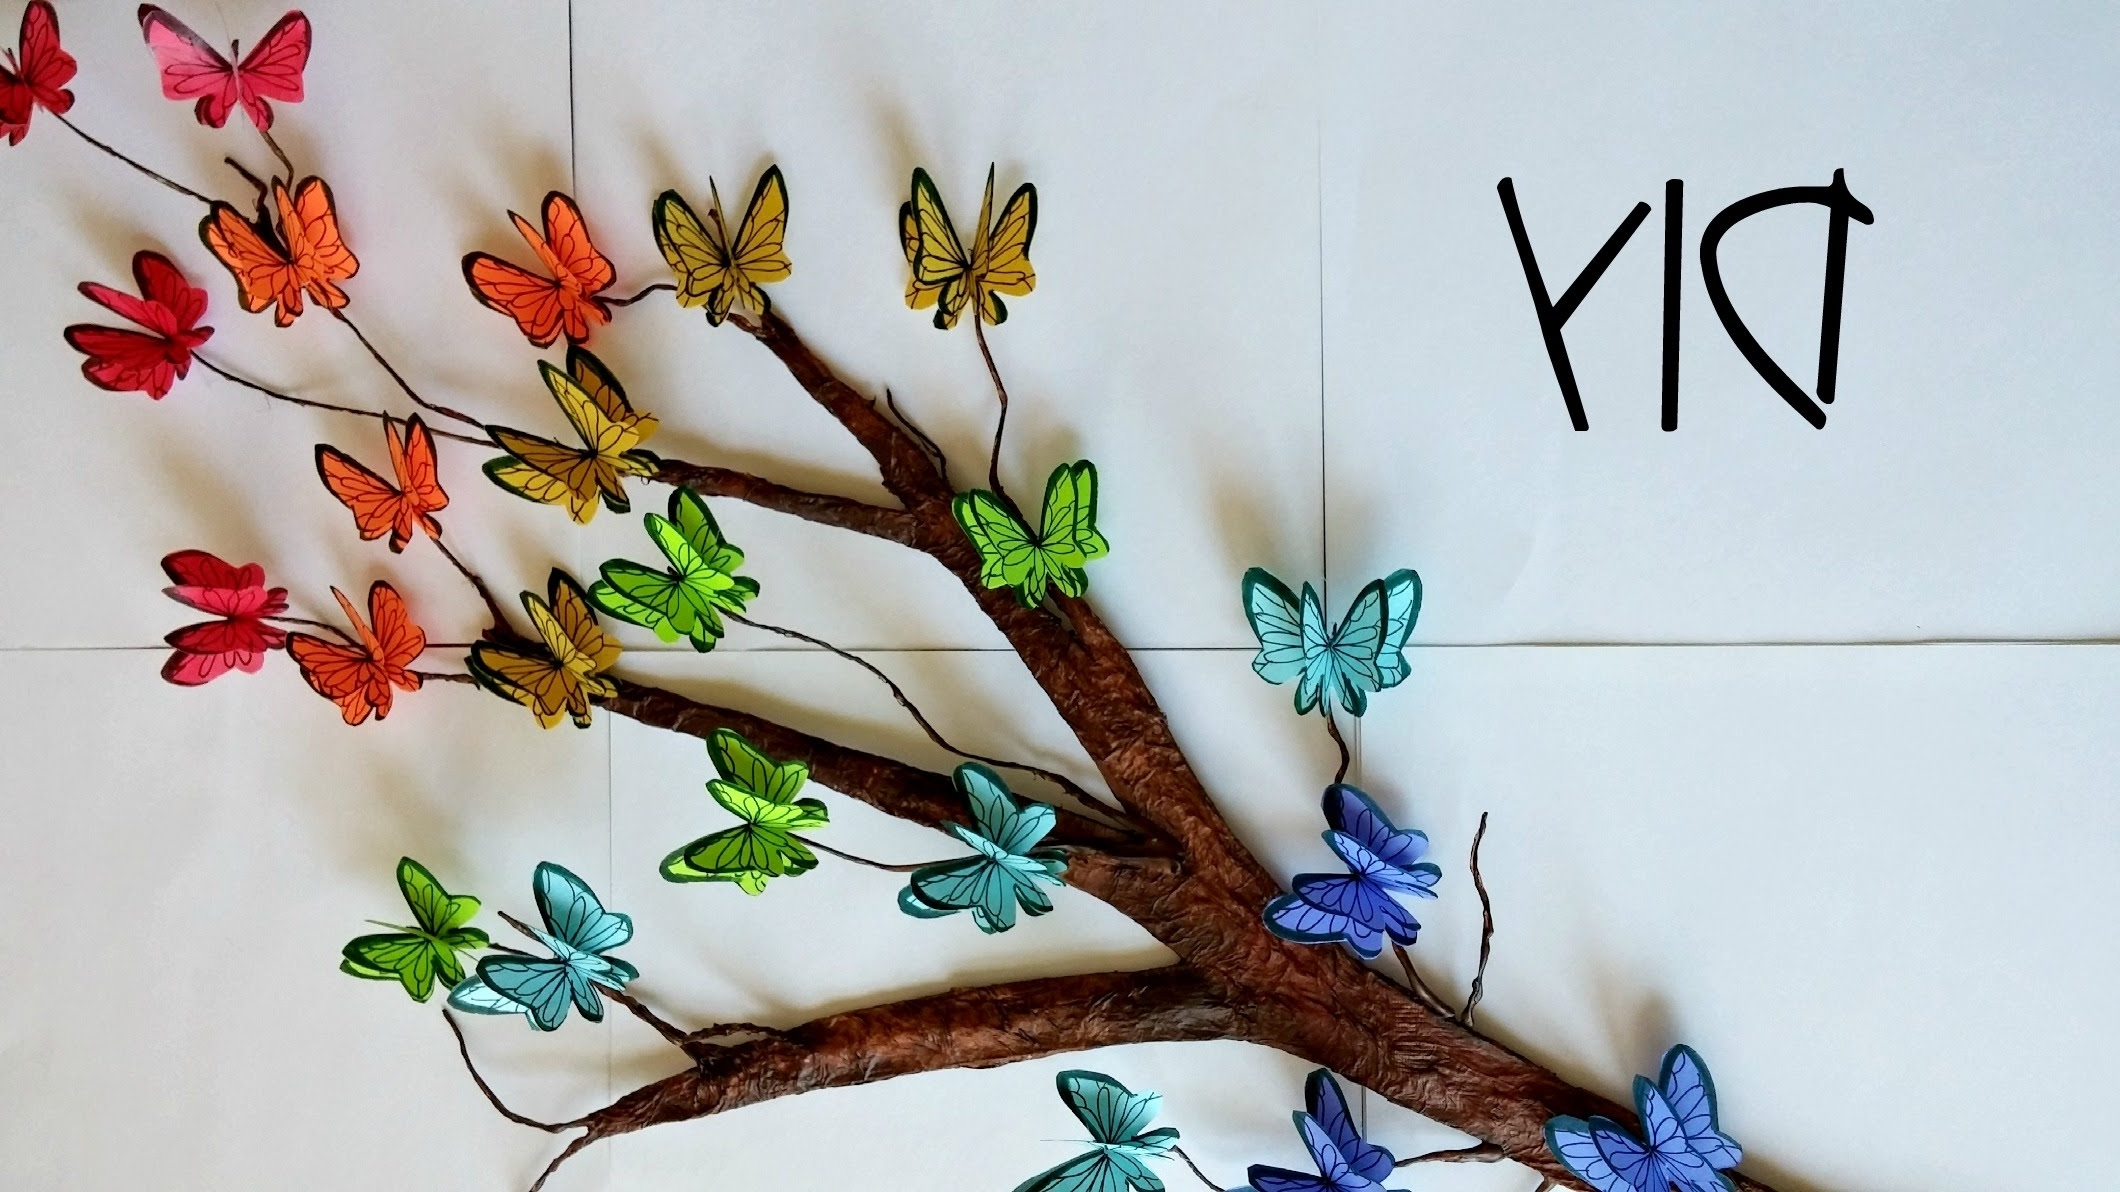 Diy Tree Branch + 3D Butterflies ♥ // Room Decor – Youtube Intended For Most Popular Diy 3D Wall Art Butterflies (Gallery 5 of 15)